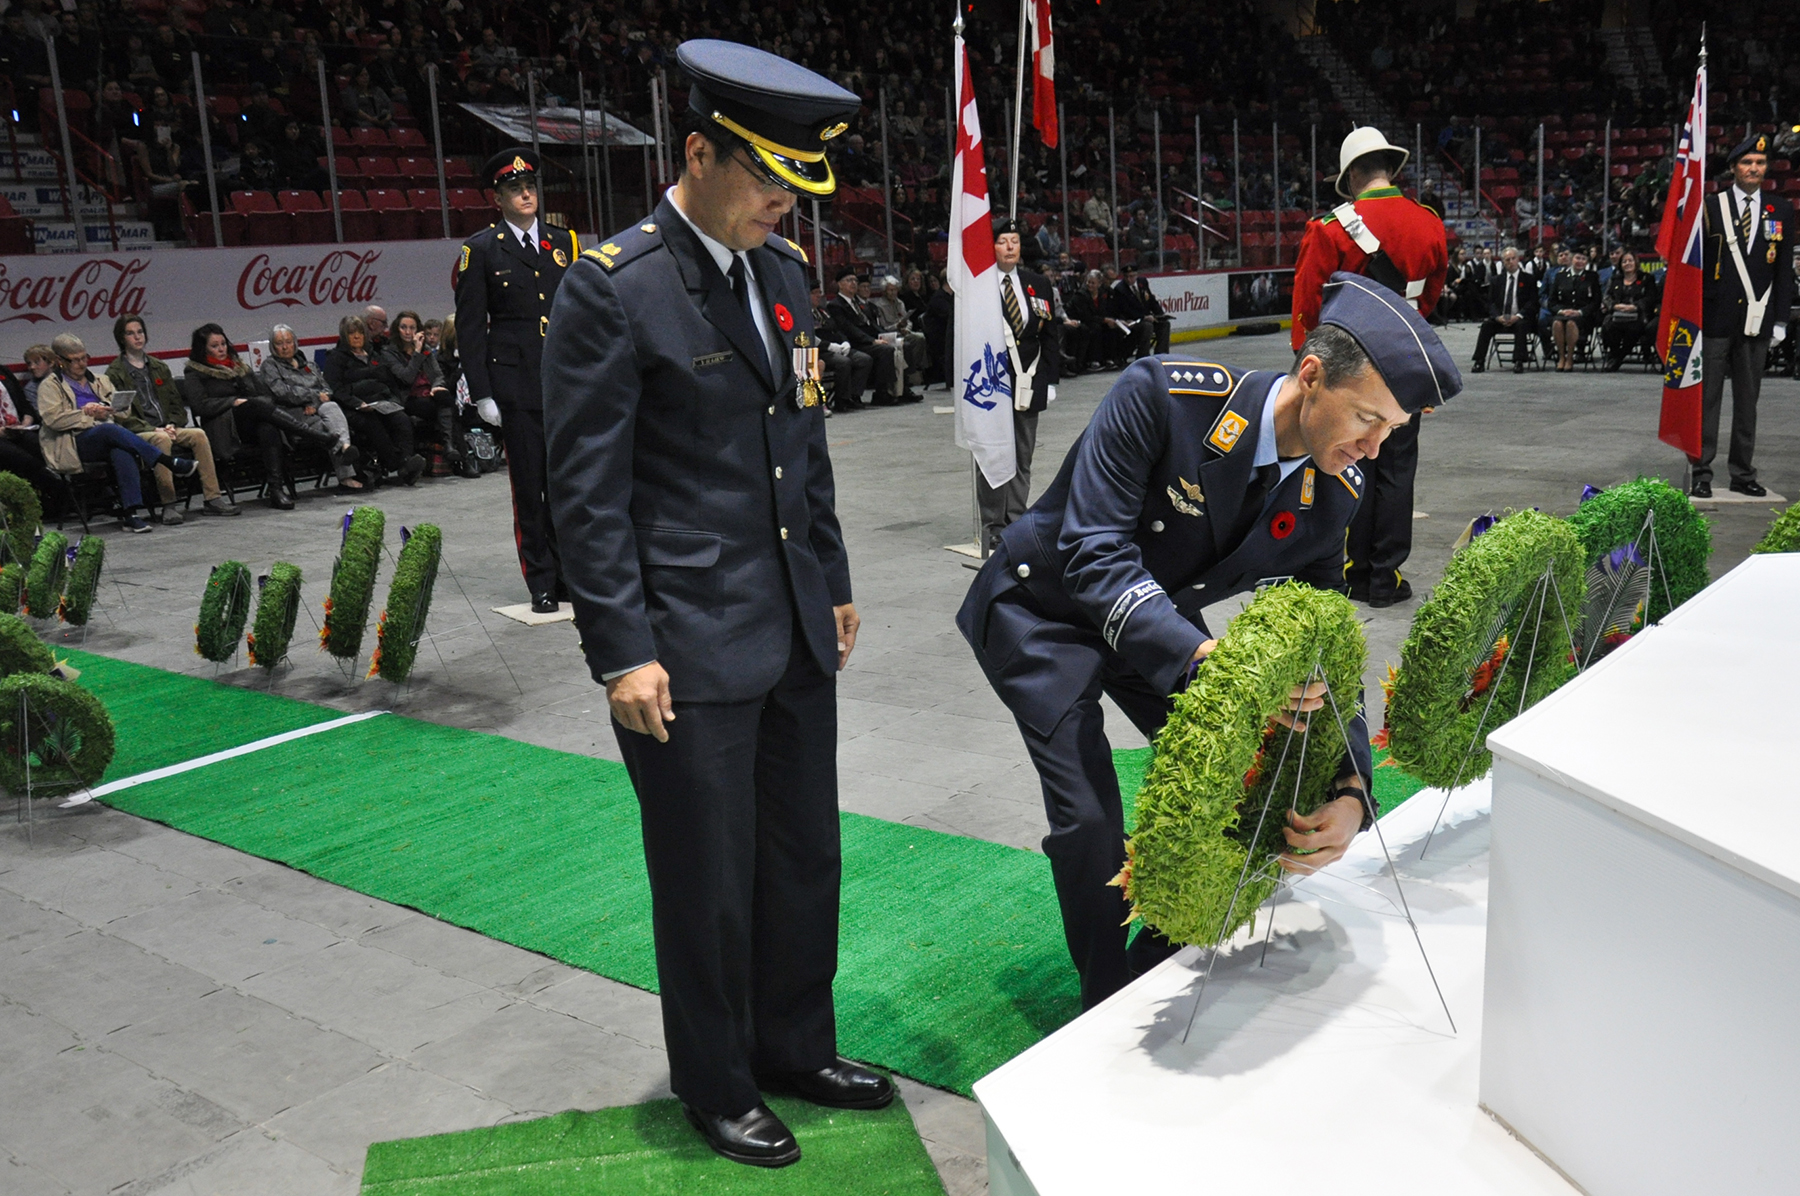 At Mosaic Place in Moose Jaw, Saskatchewan, Major Yoo Hean Liew (left), of the Royal Singapore Air Force, and Captain Alexej Nachtigal, of the German Air Force, lay a wreath on behalf of foreign service members during the November 11, 2016, Remembrance Day ceremony. PHOTO: Lieutenant Jennifer Halliwell